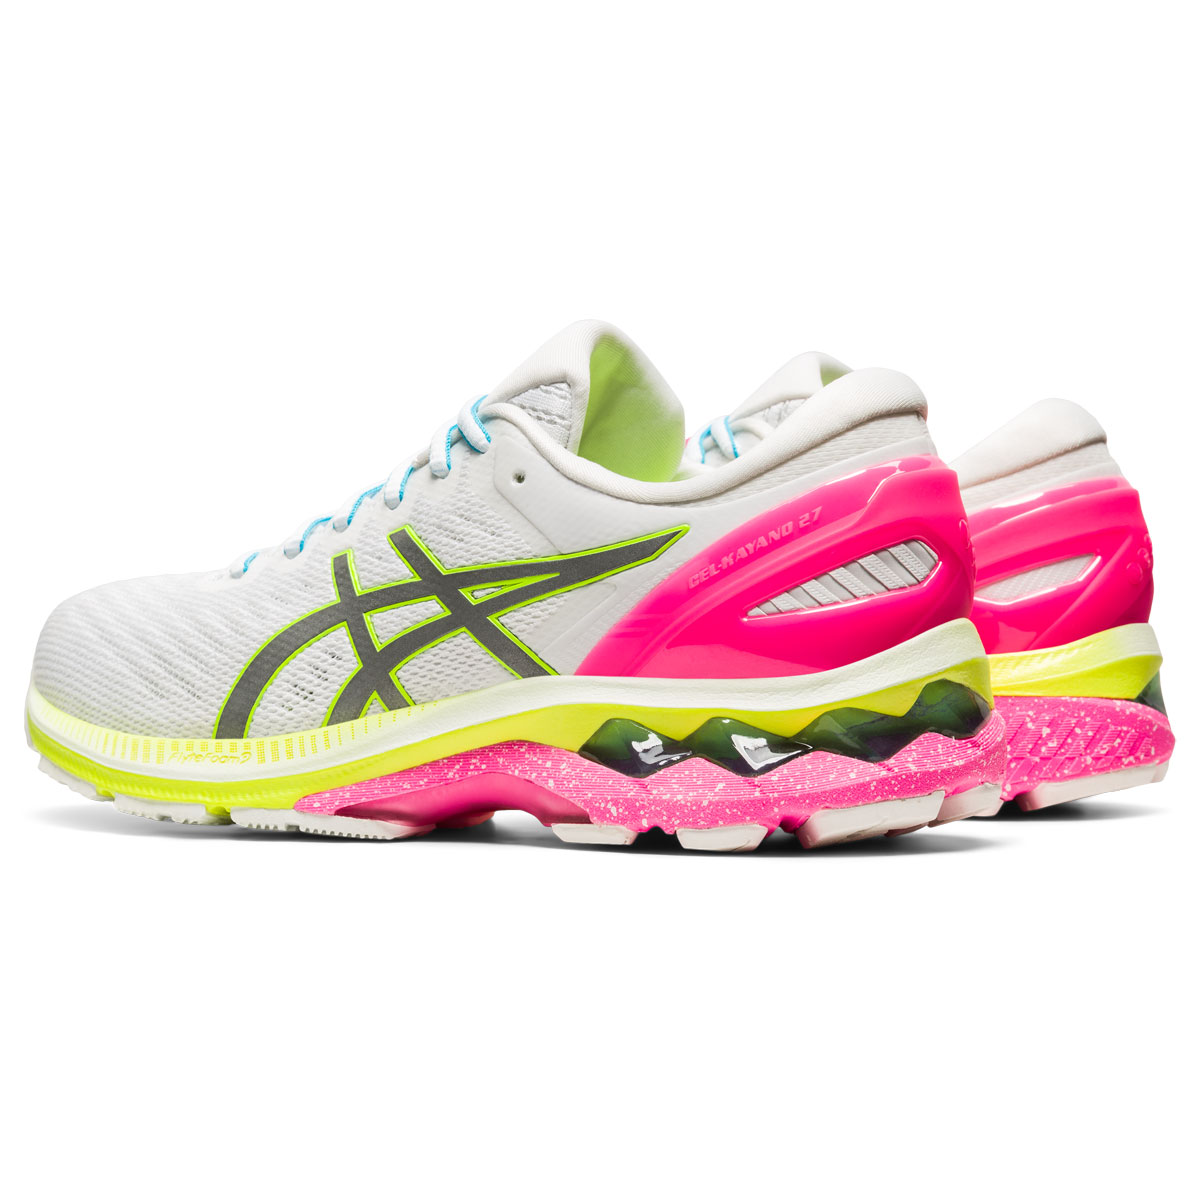 Women's Asics GEL-Kayano 27 Lite-Show Running Shoe - Color: White/Pure Silv (Regular Width) - Size: 5, White/Pure Silver, large, image 4